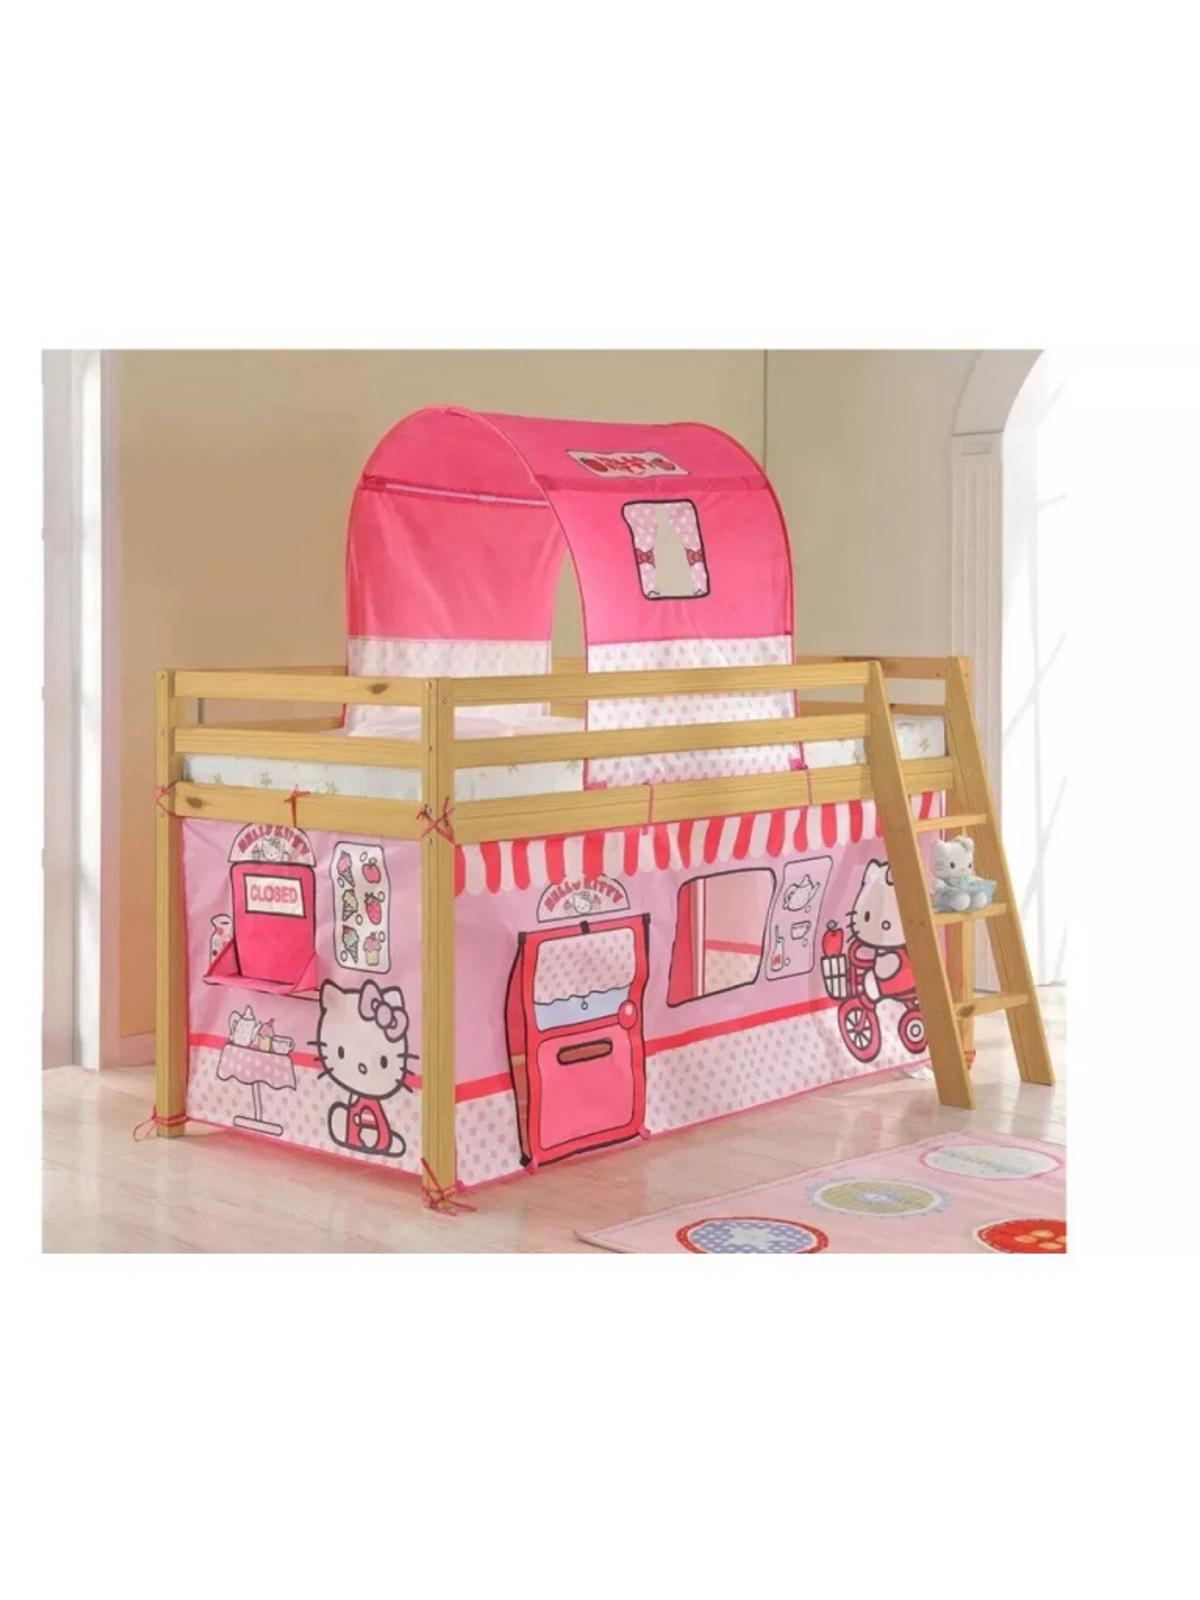 Picture of: Hello Kitty 1 9m Mid Sleeper Bed Tent In Rm16 Stifford For 45 00 For Sale Shpock